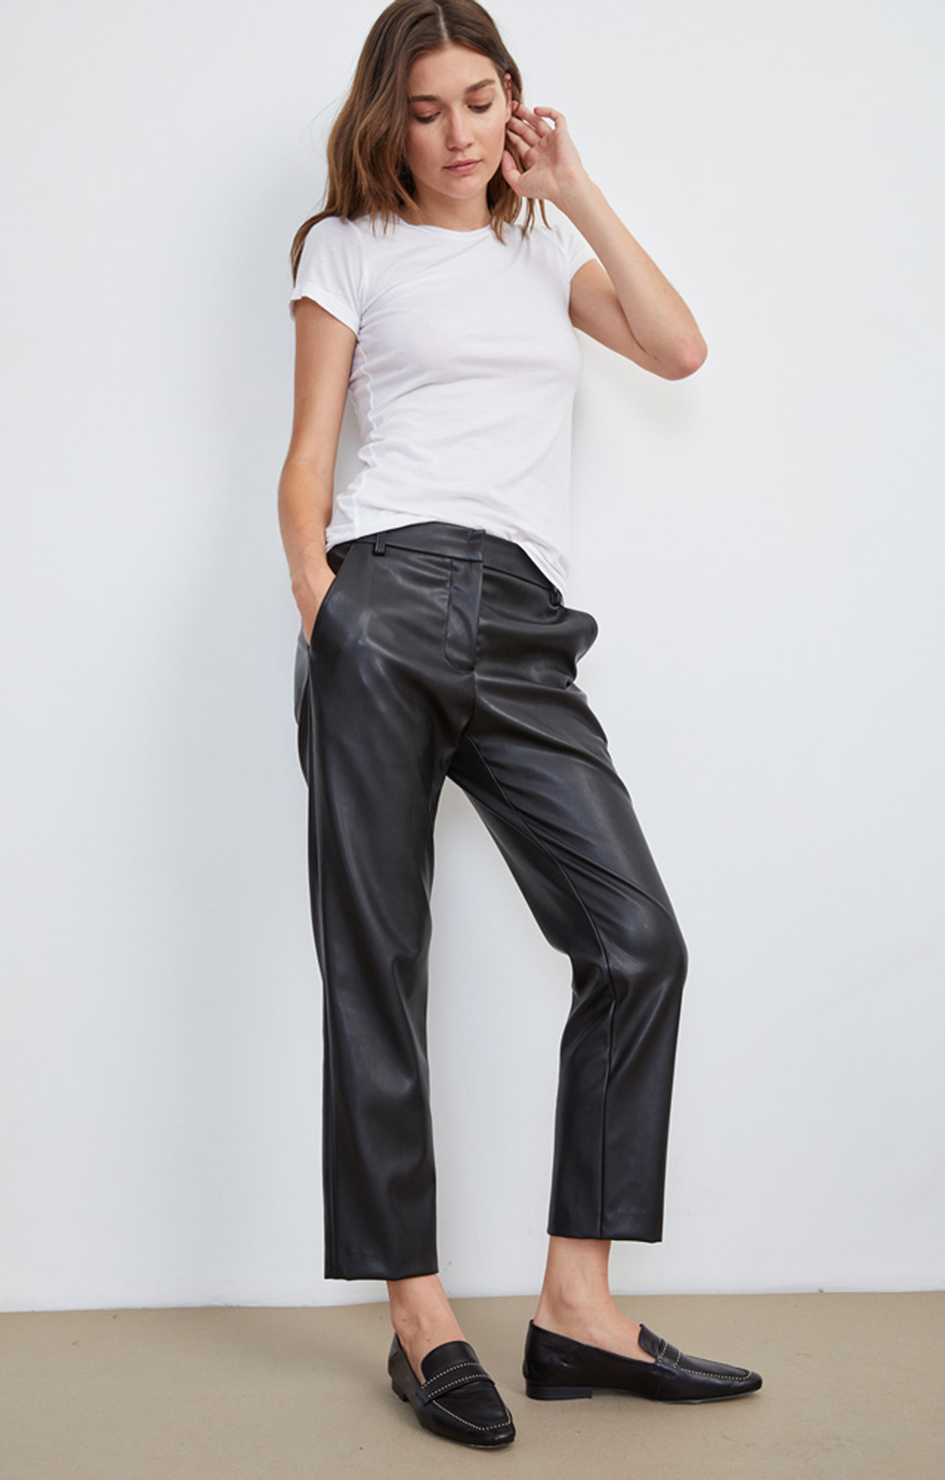 Hydie Vegan Leather Pants